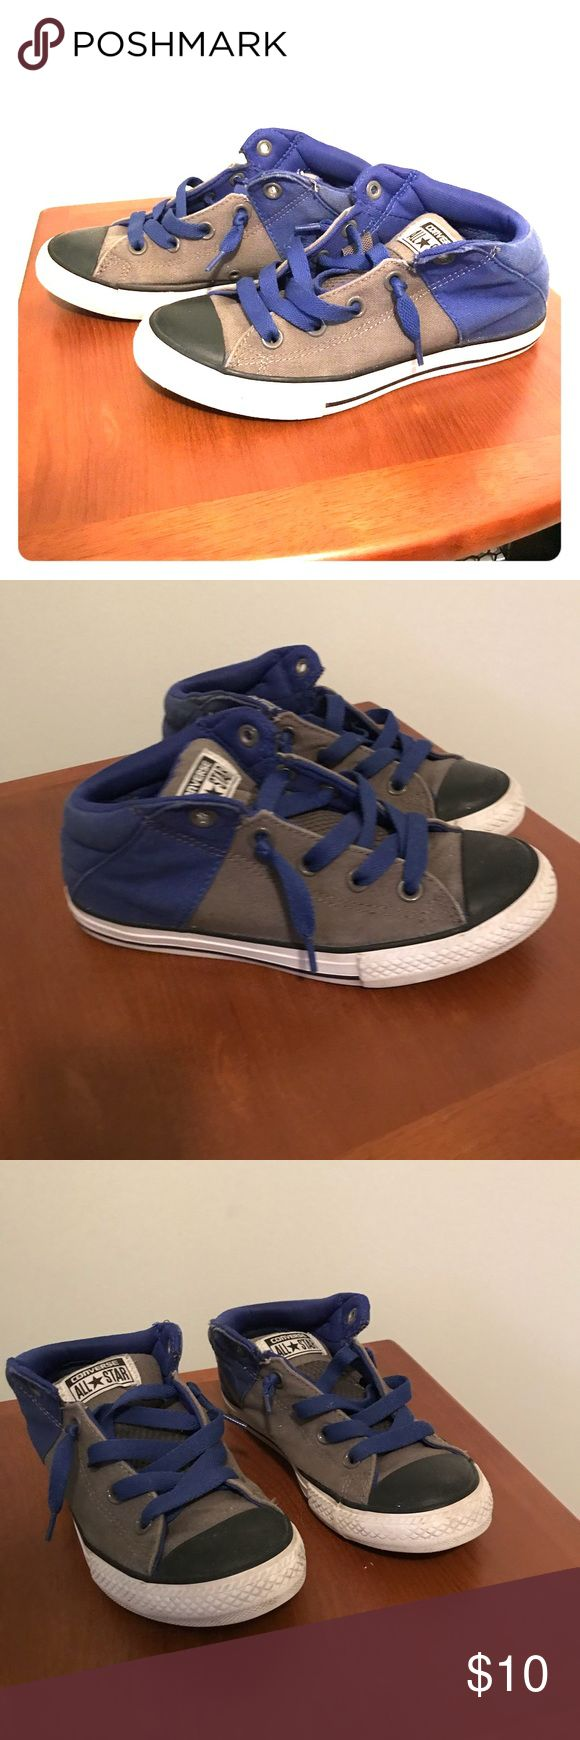 Boys Converse Shoes Boys Converse Shoes Size 3. Good condition, lots of life left for your little trendsetter. Canvas and rubber on soles are all intact, very light wearing around ankle area(shown in photos) Converse Shoes Sneakers